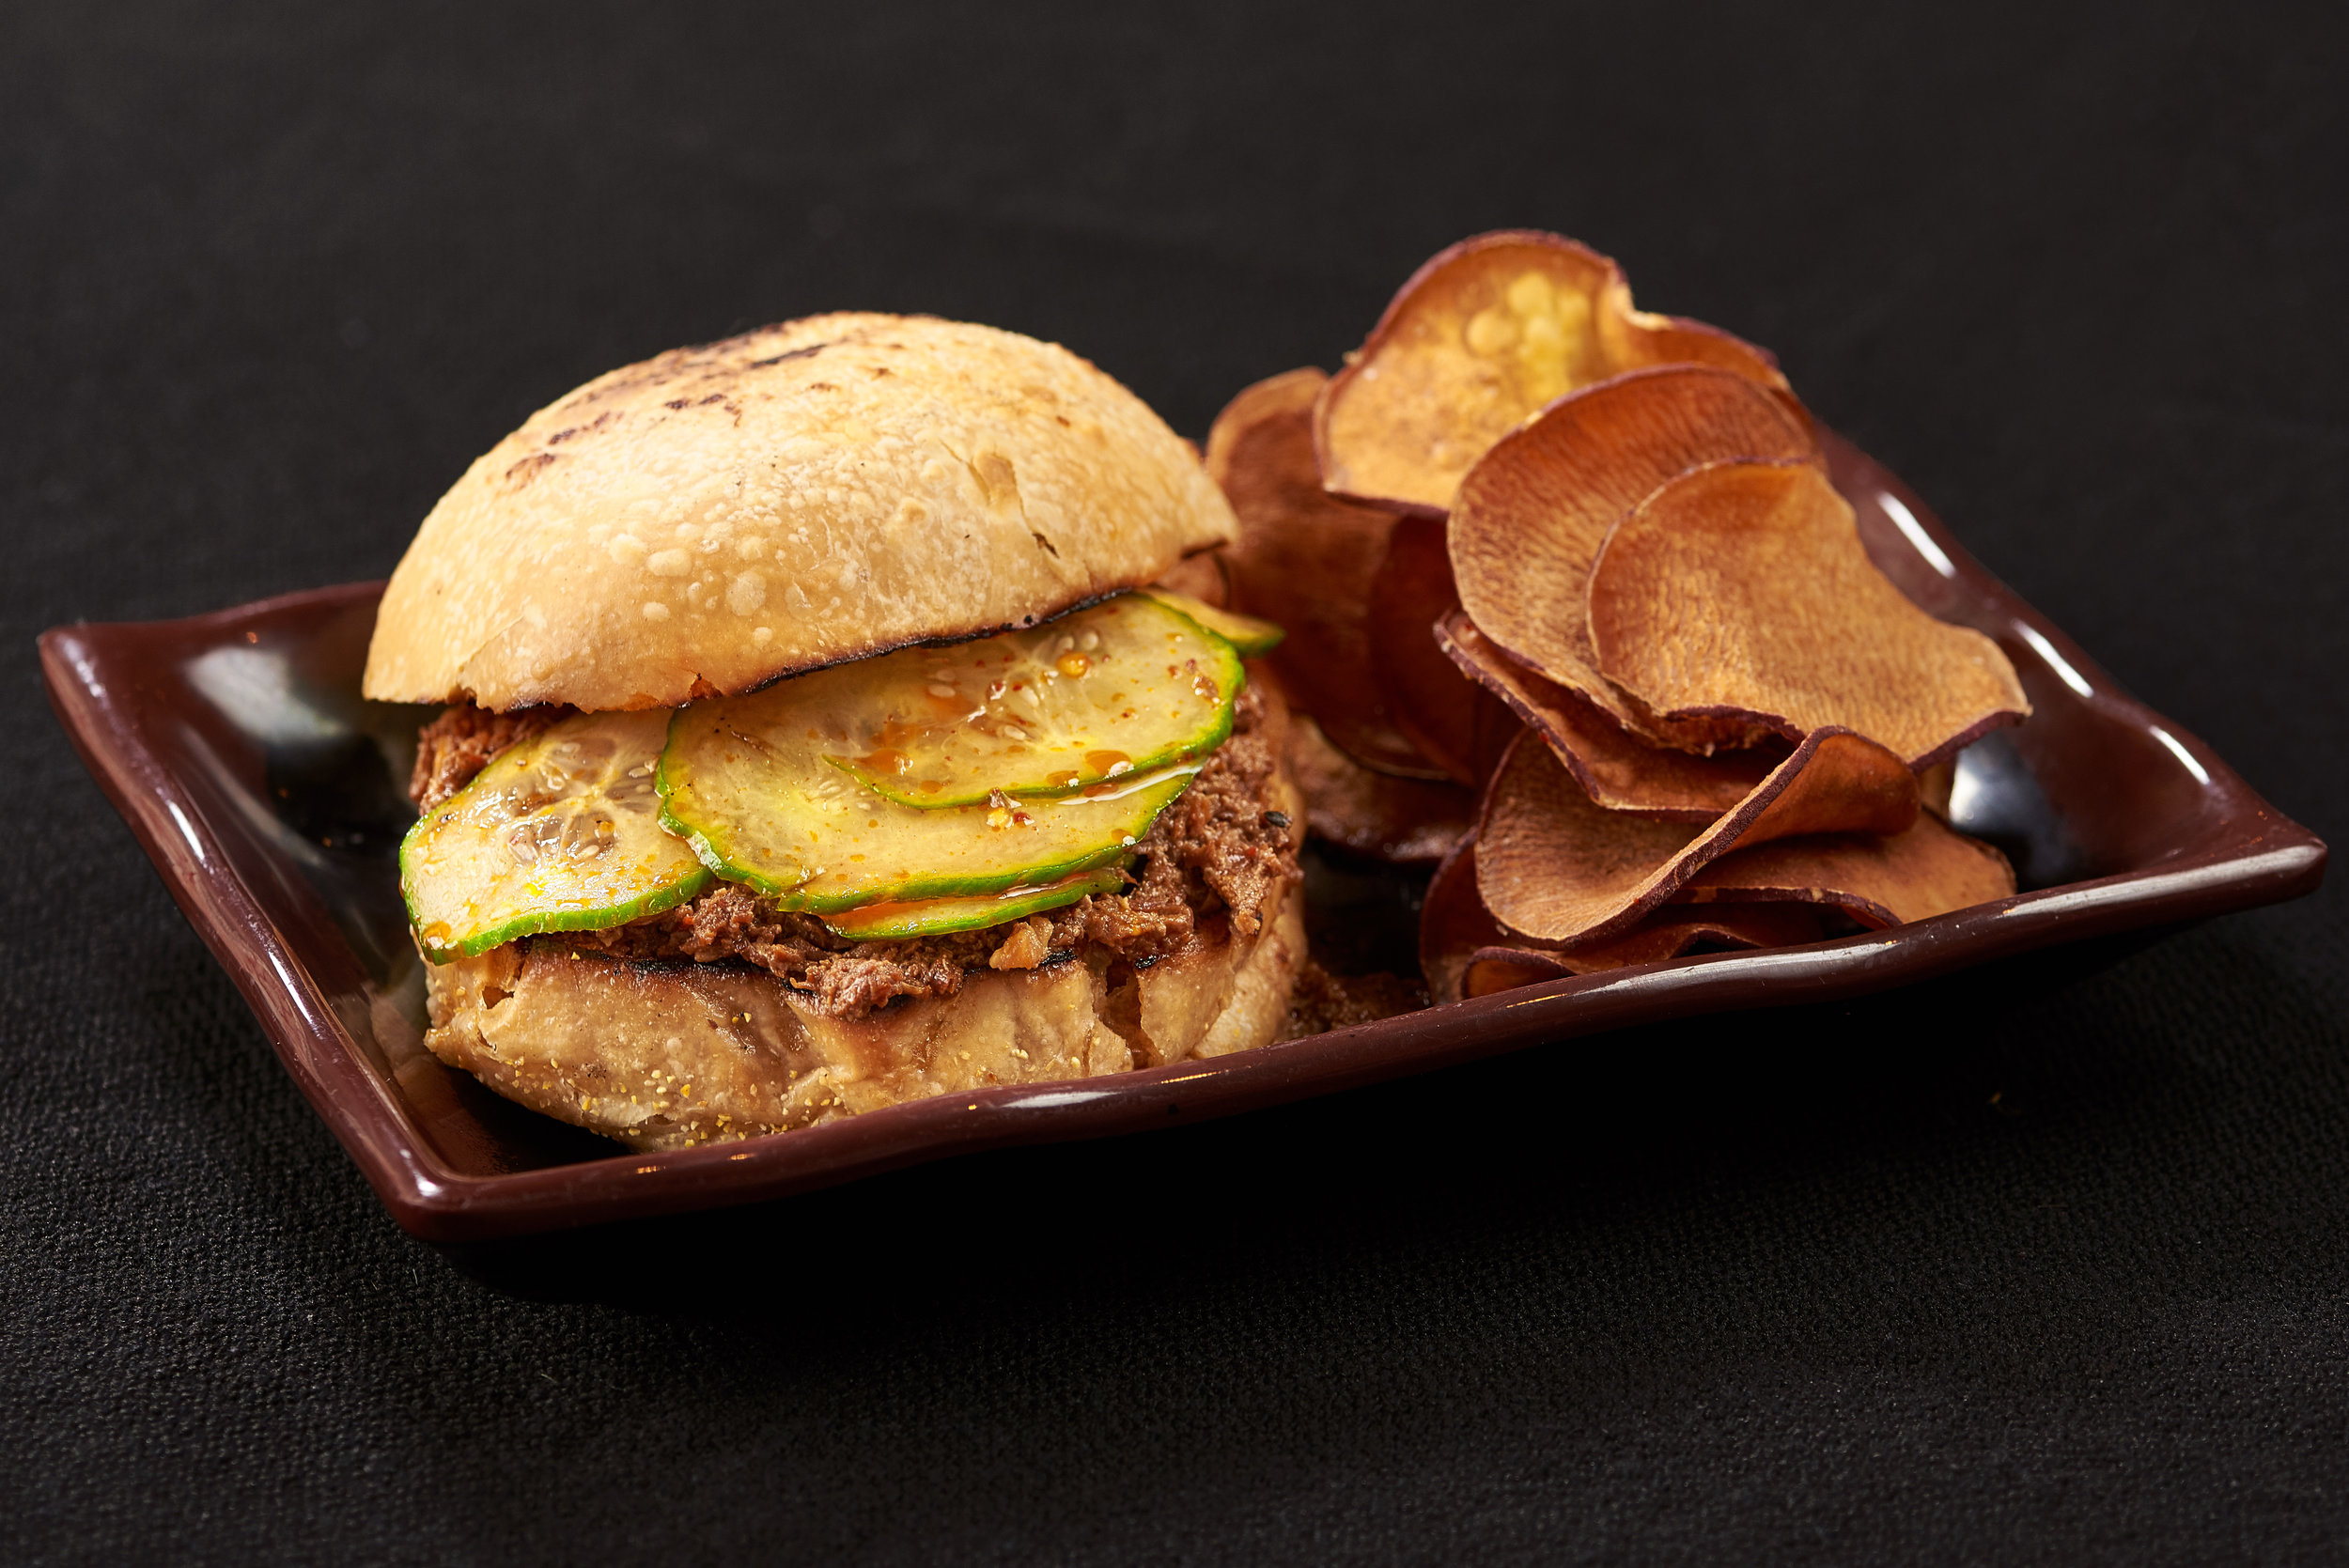 Professional food photo of pulled pork sandwich with pickles and potato chips. Commercial photography